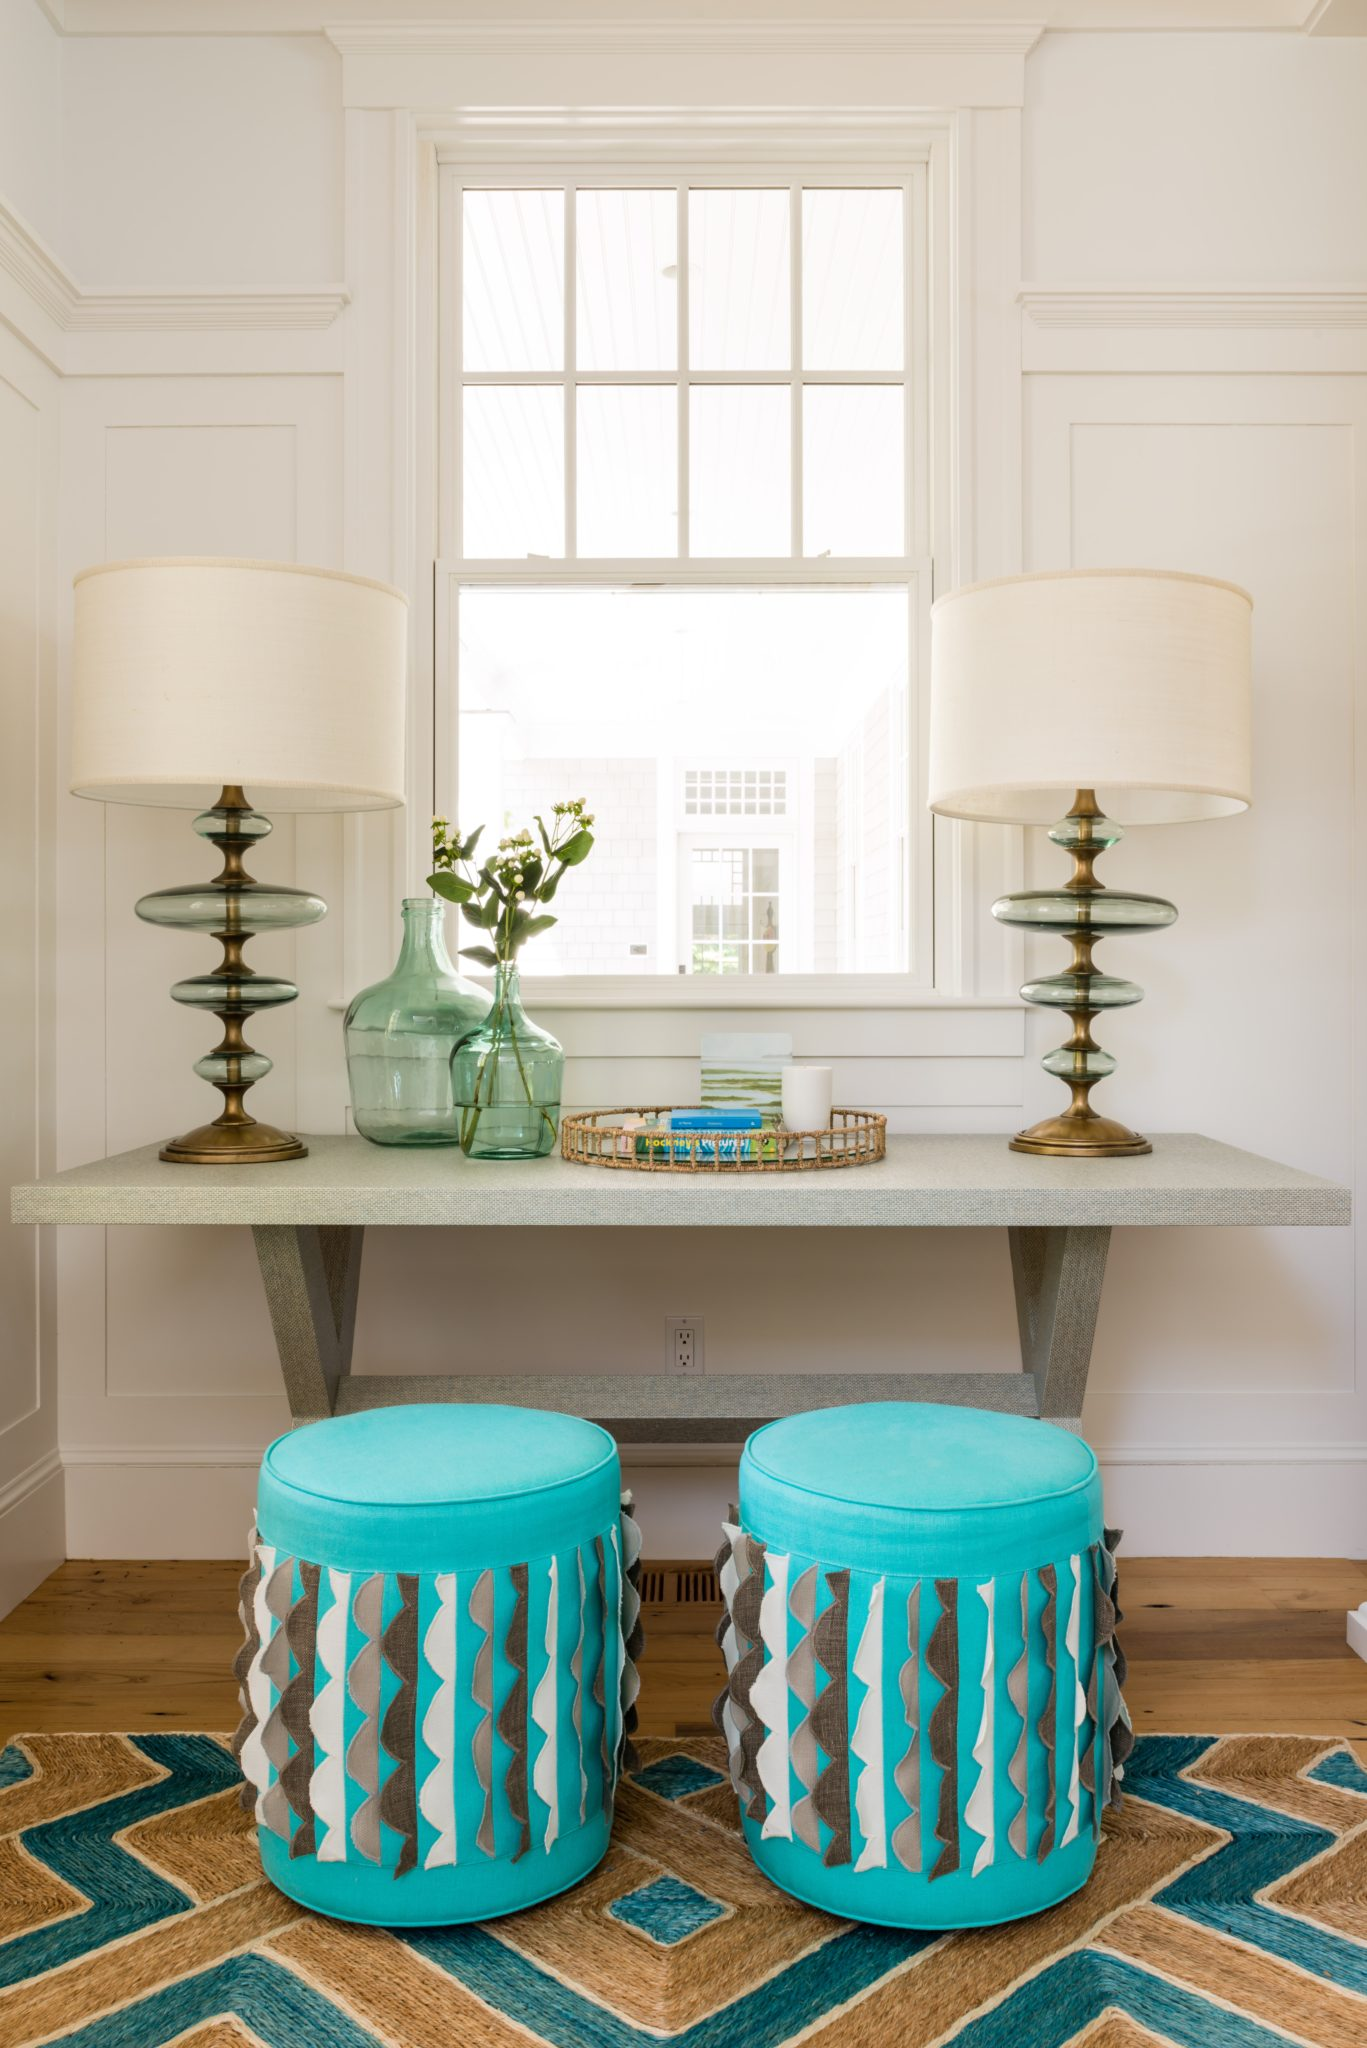 Osterville Coastal House - Entry Hall Console and Ottomans by Justine Sterling Design